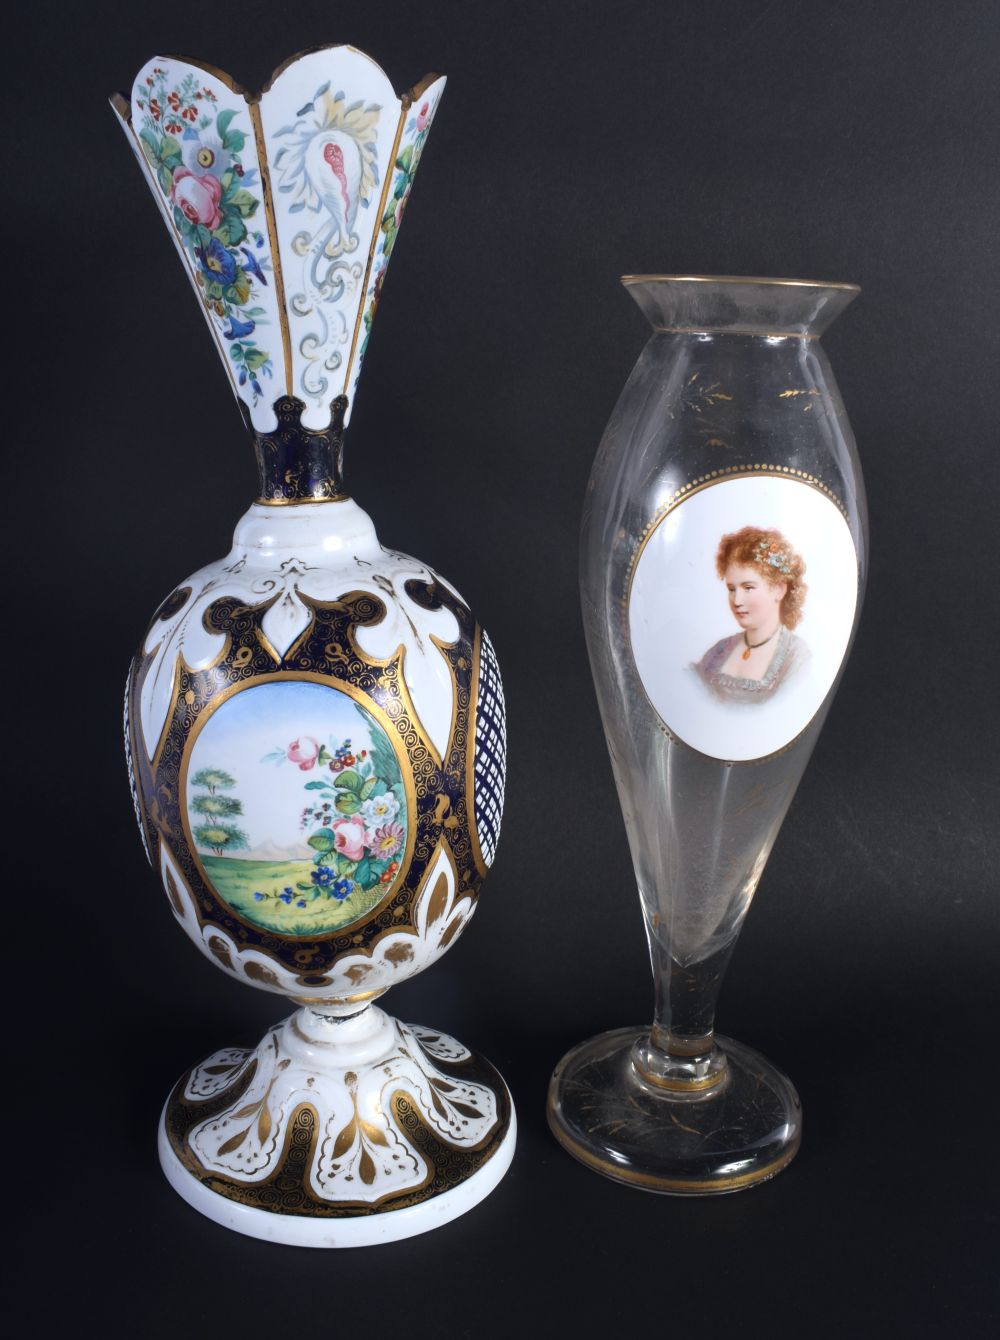 AN ANTIQUE BOHEMIAN ENAMELLED GLASS VASE together with a bohemian portrait vase. 32 cm high. (2)